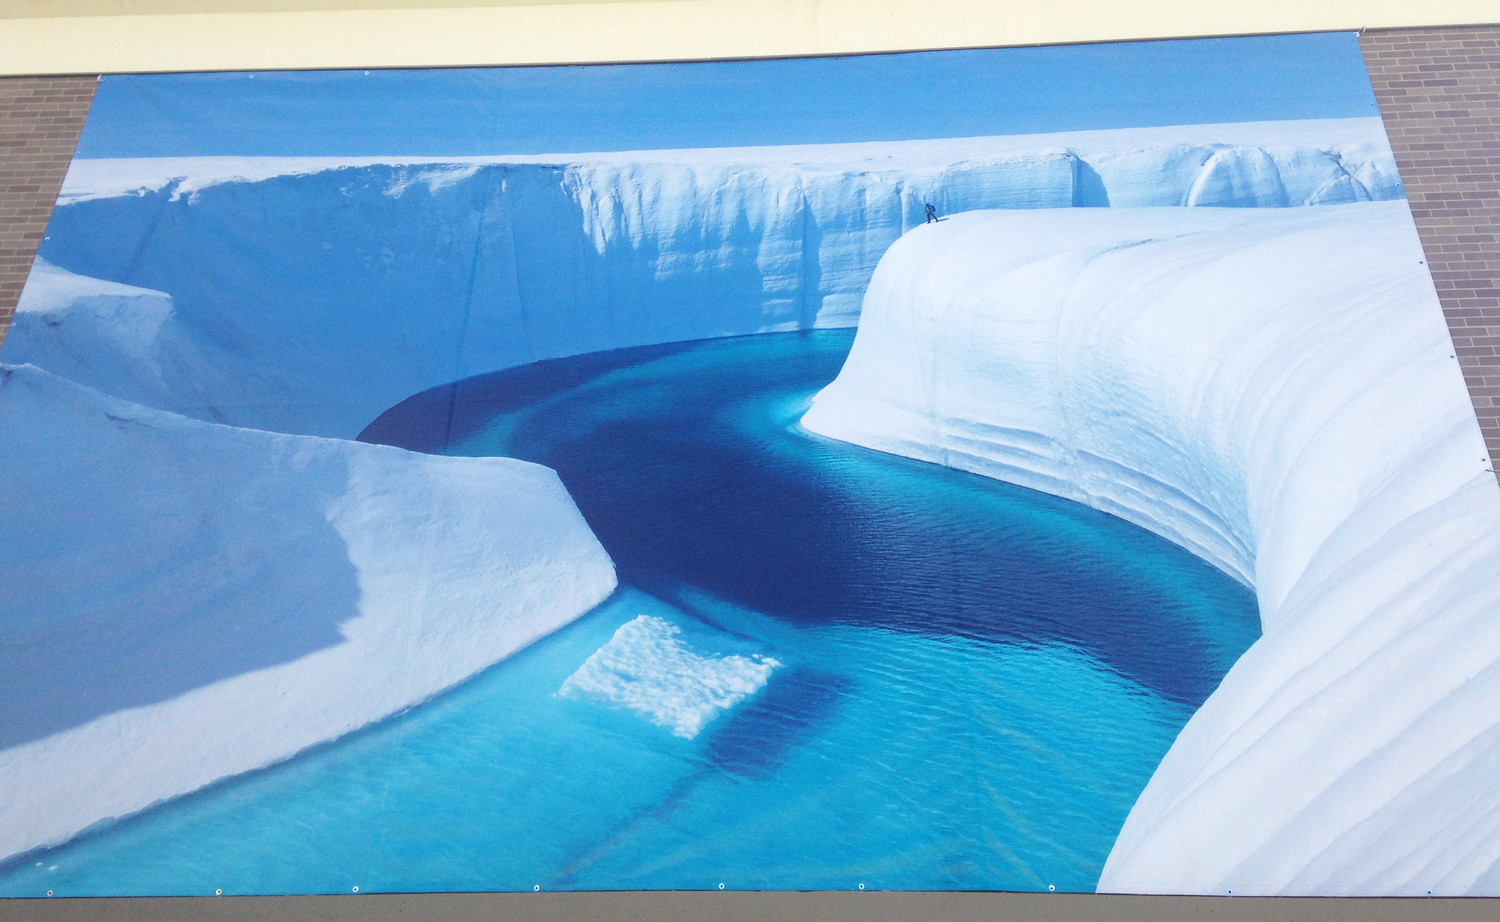 A large public mural, from the photographer by James Balog, attached to the brick facade of the School of Engineering at Brown University, portraying Birthday Canyon and the melting of the Greenland ice sheet.